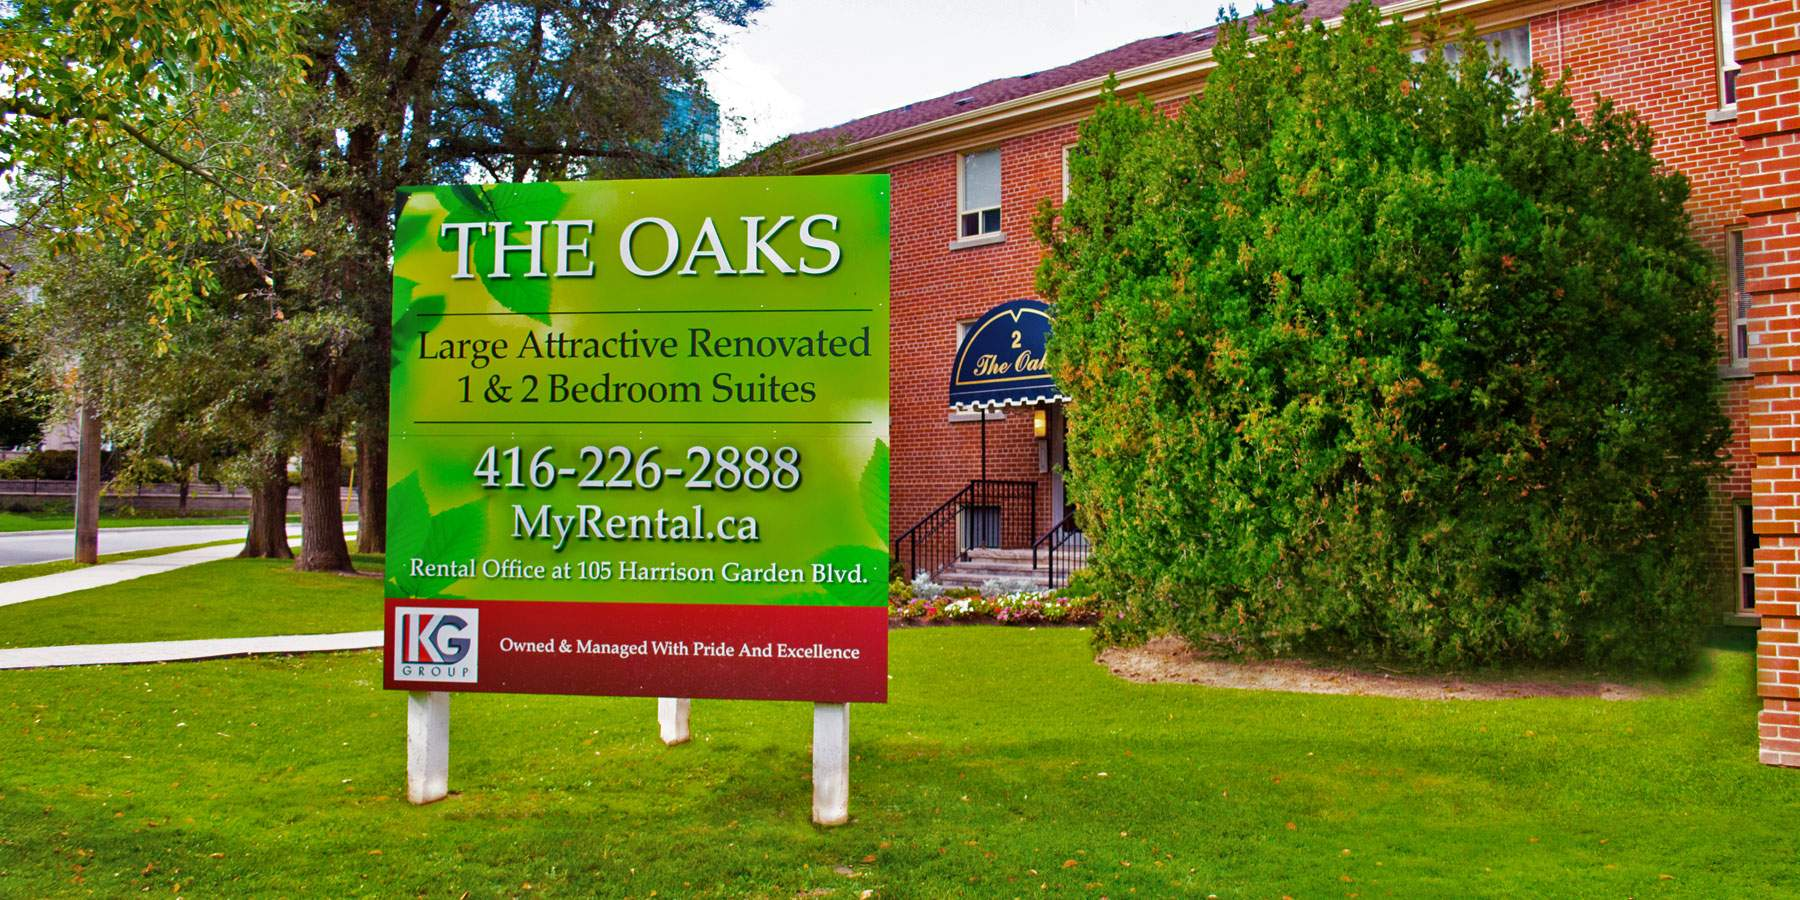 The Oaks Exterior Front Lawn